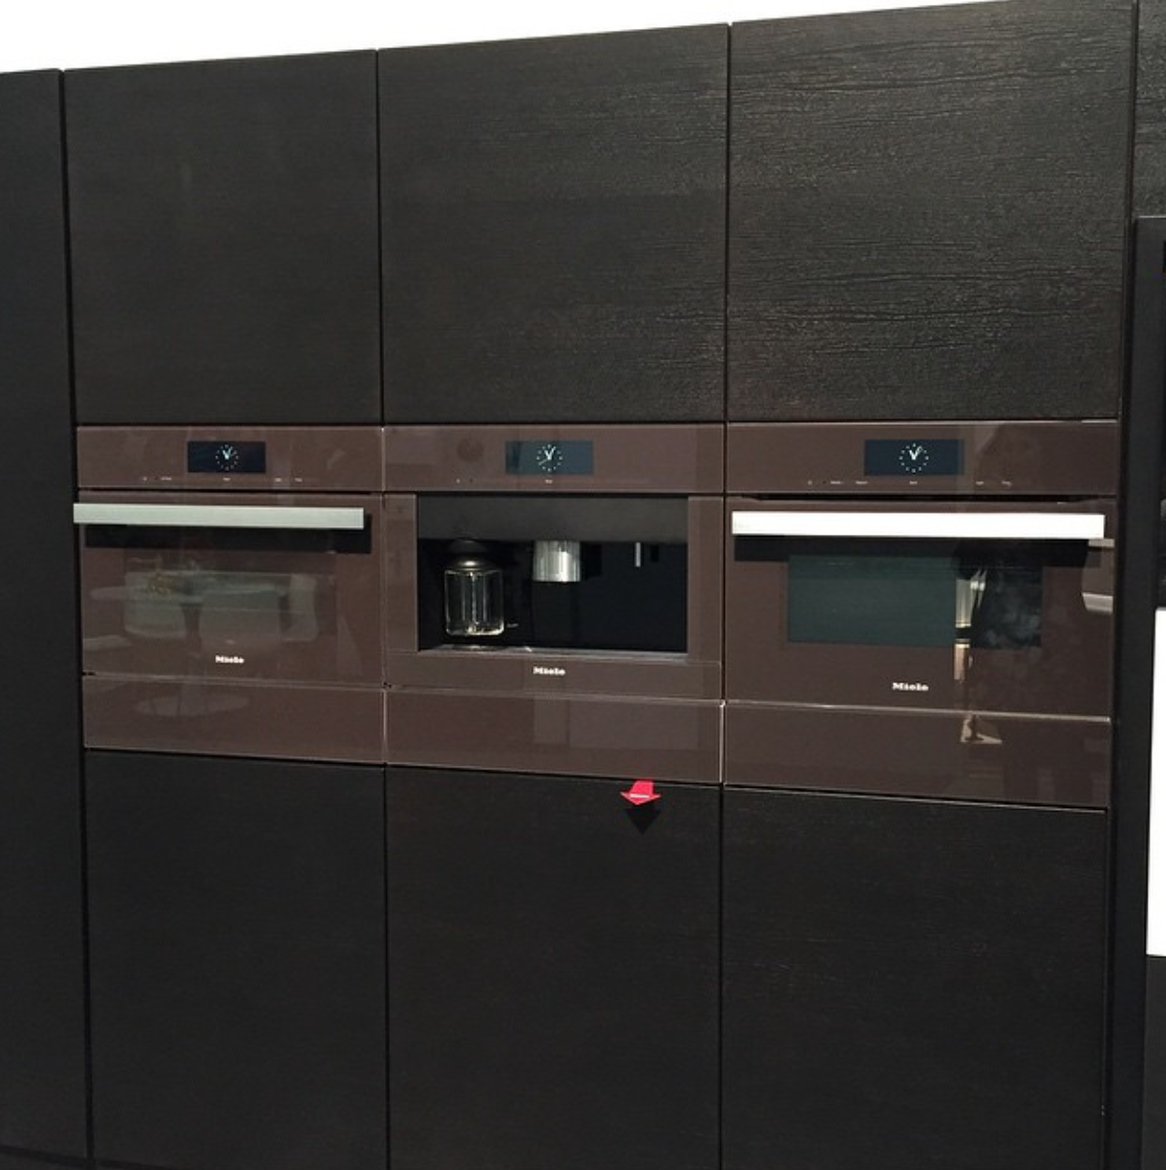 Brown appliances by Miele at Dwell on Design